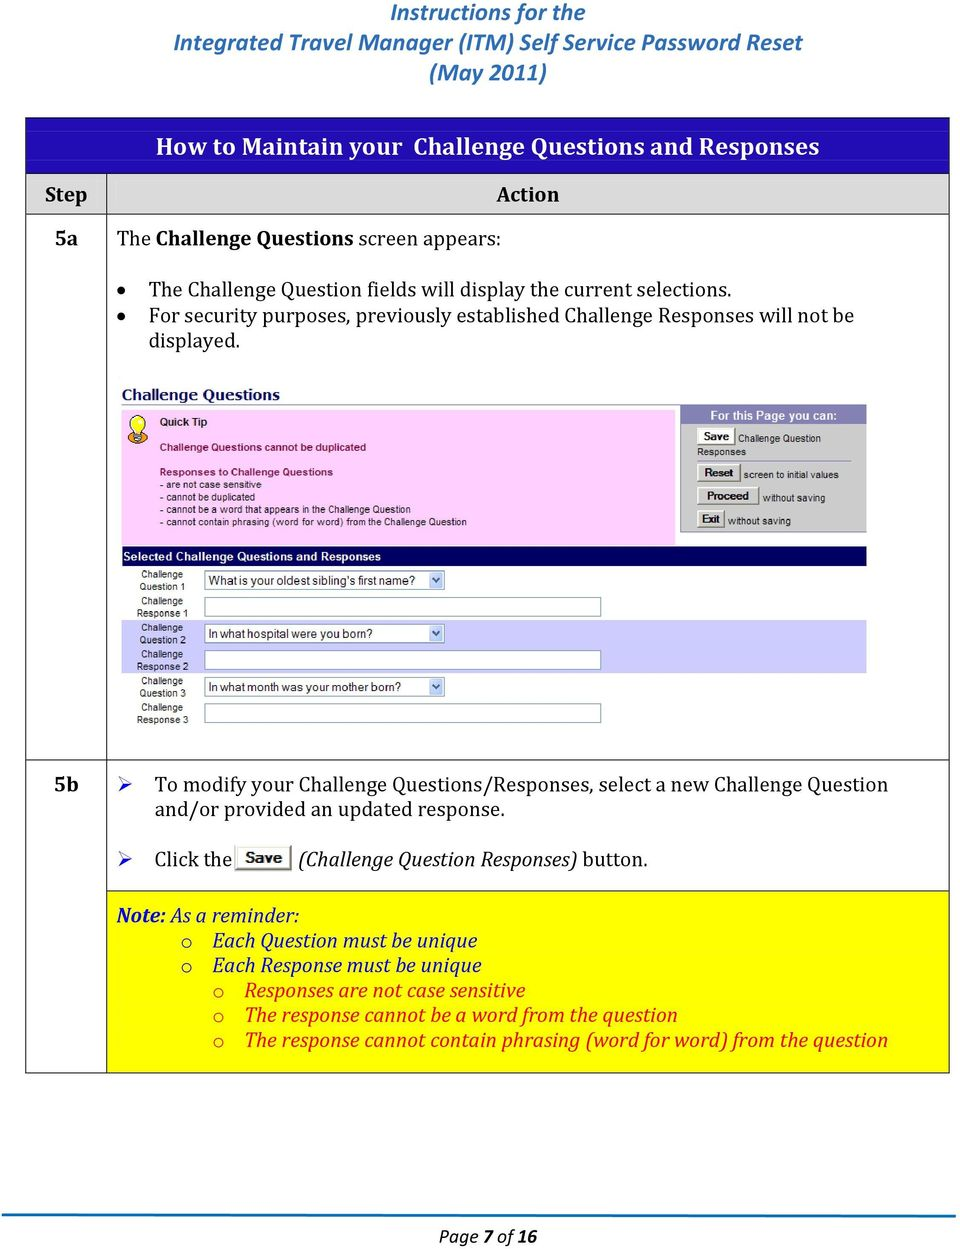 5b To modify your Challenge Questions/Responses, select a new Challenge Question and/or provided an updated response. Click the (Challenge Question Responses) button.